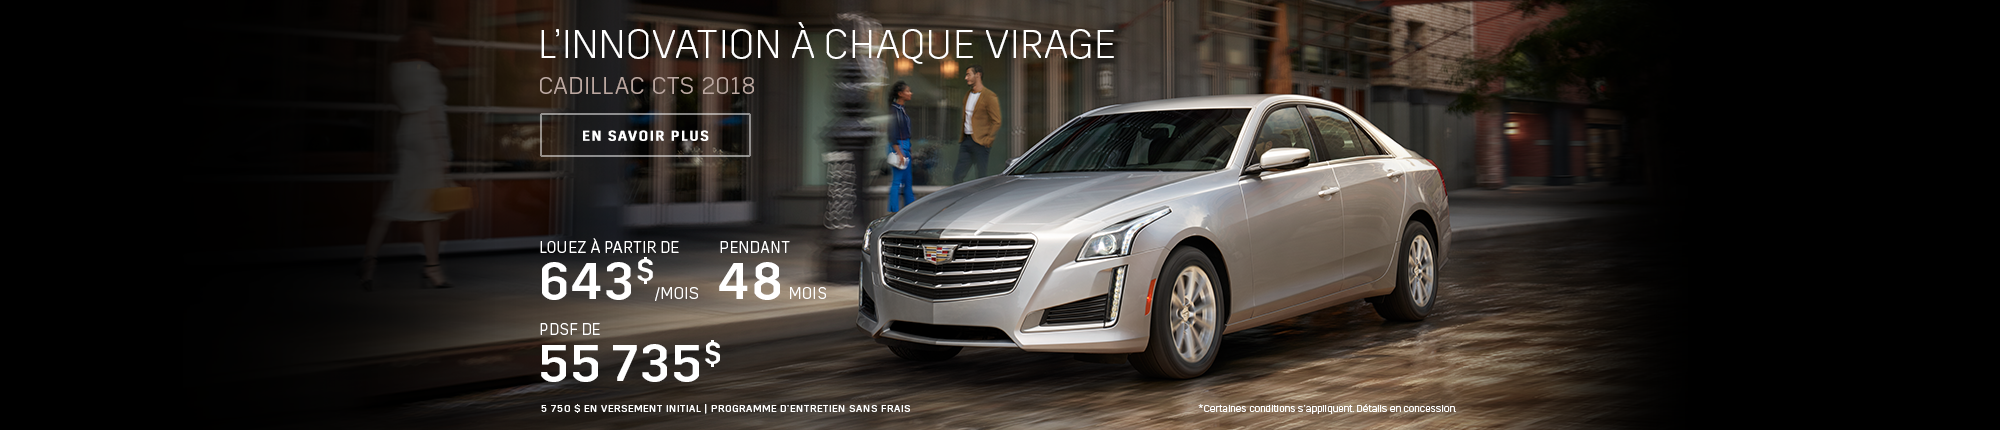 CADILLAC CTS 2018 À TRACTION INTÉGRALE